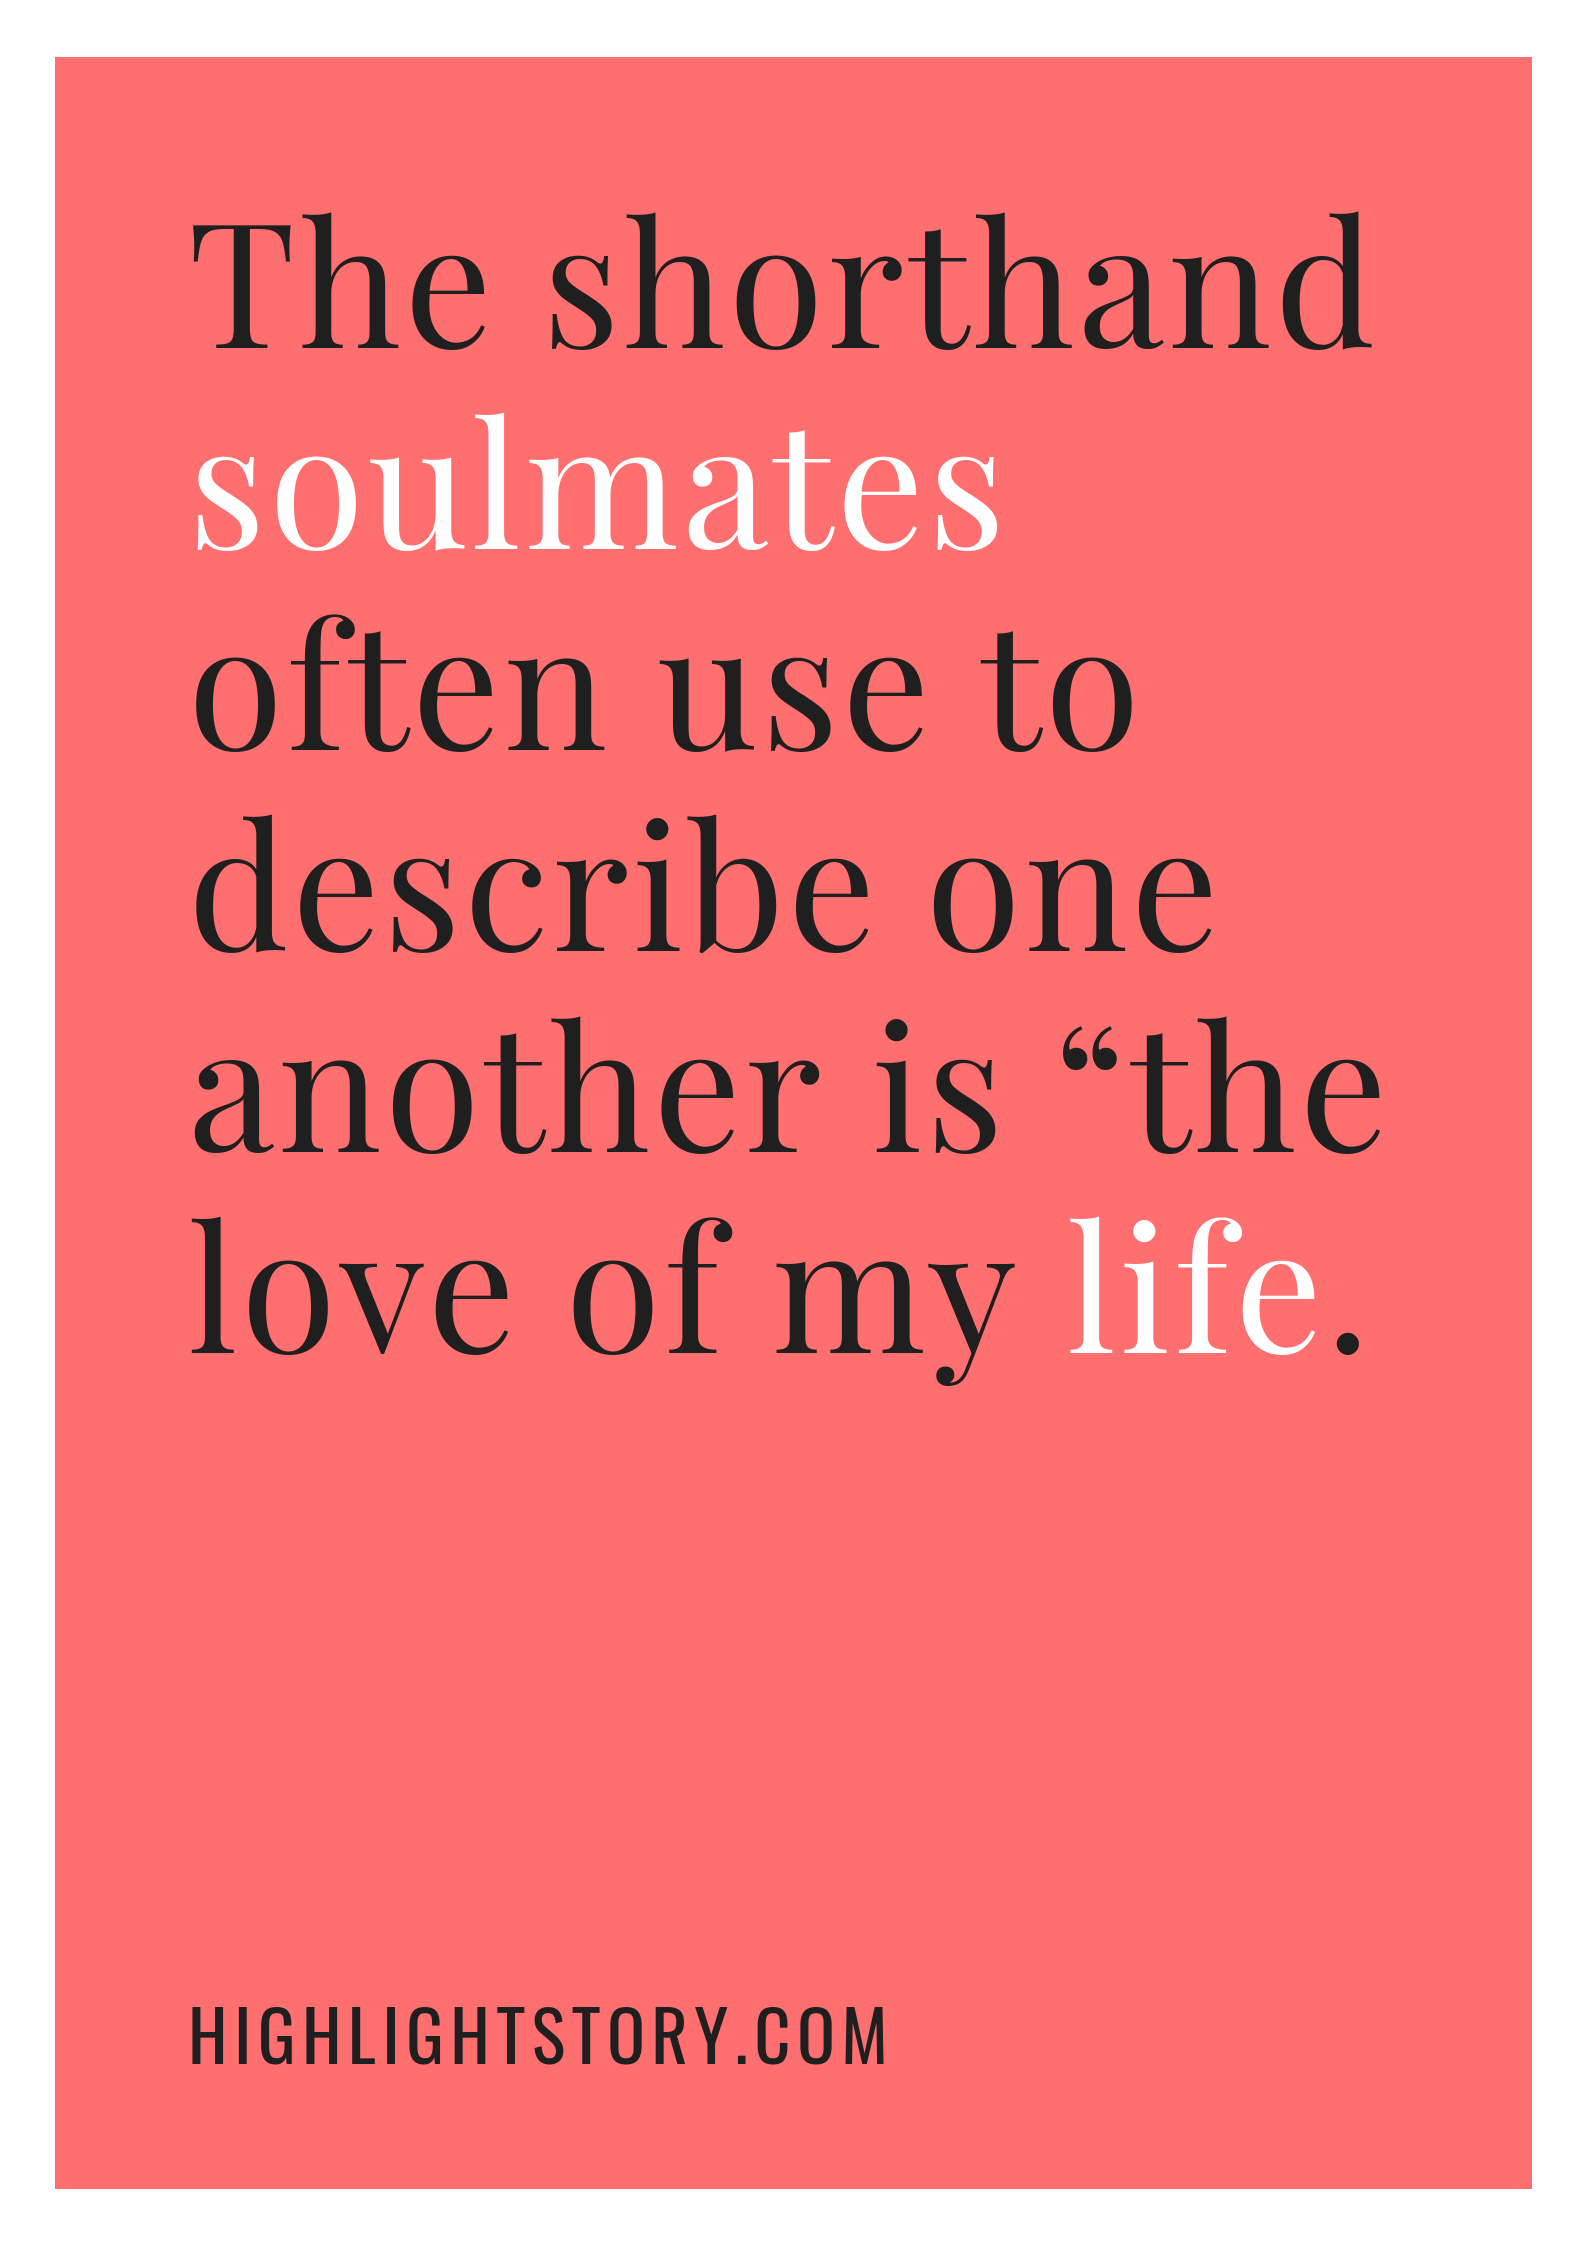 """The shorthand soulmates often use to describe one another is """"the love of my life."""